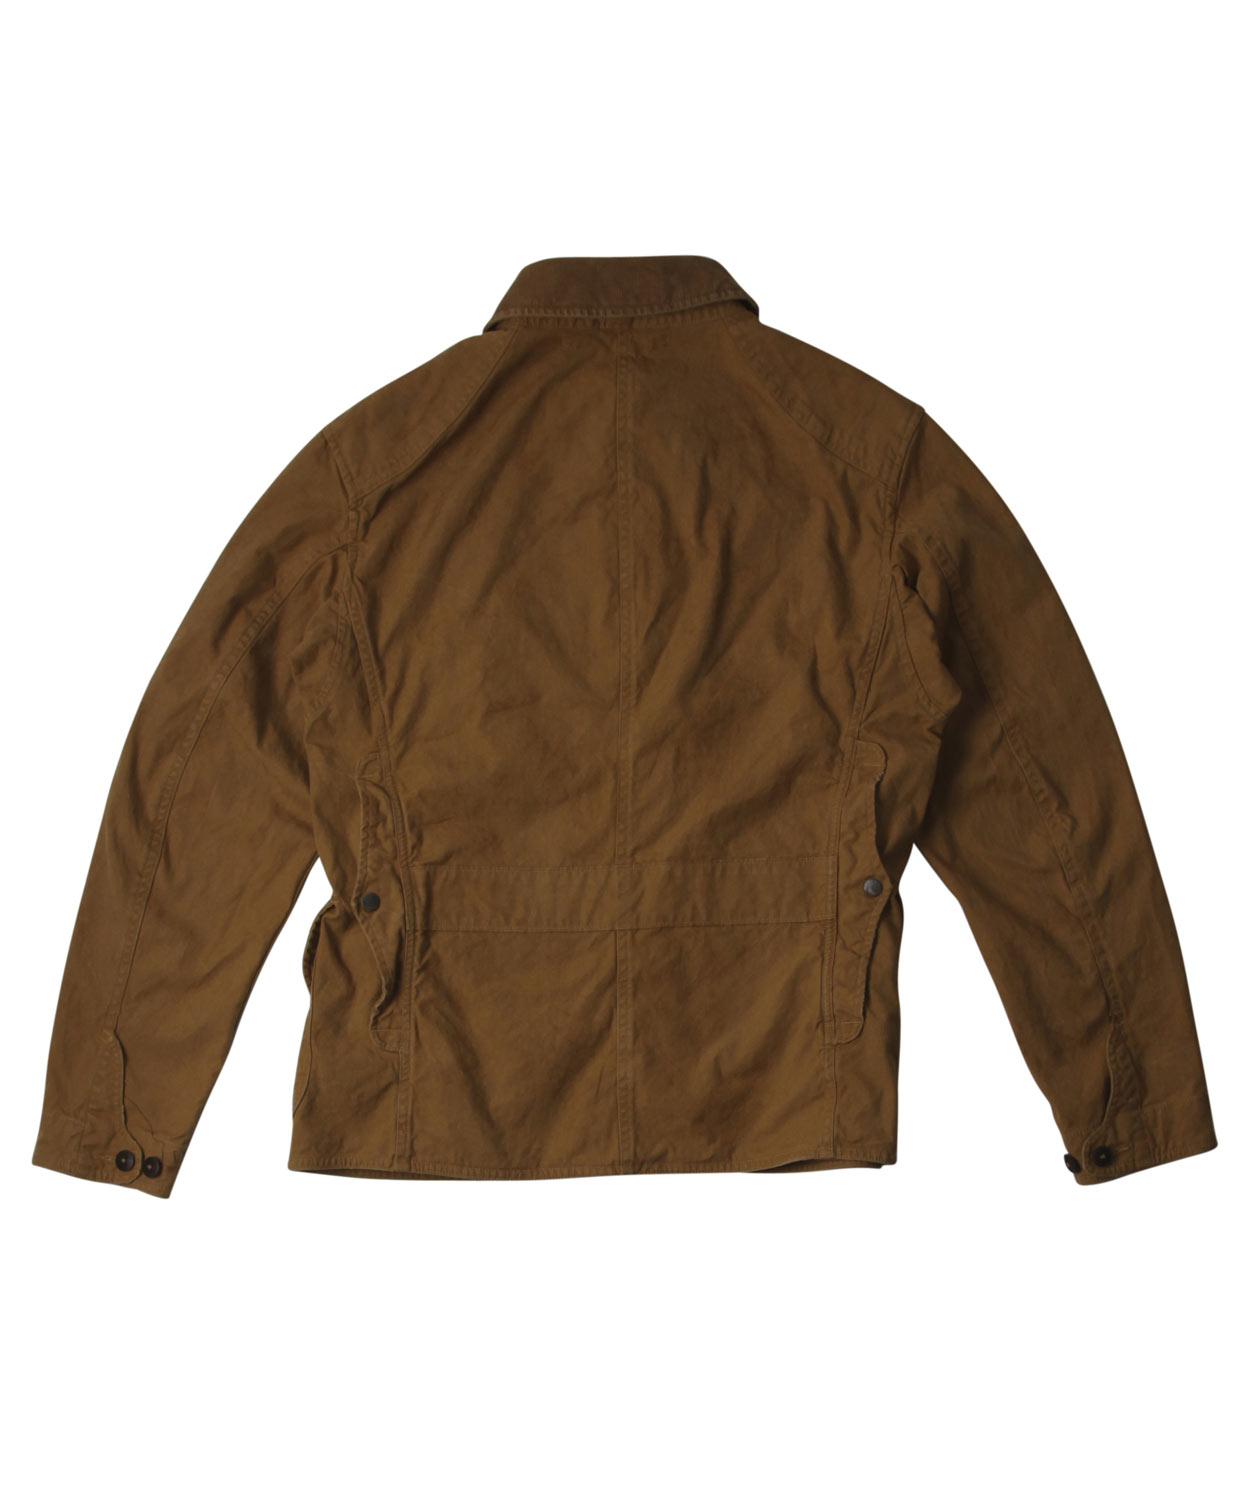 Lyst - Polo Ralph Lauren Sand Corduroy Collar Hunting Jacket in Brown for  Men